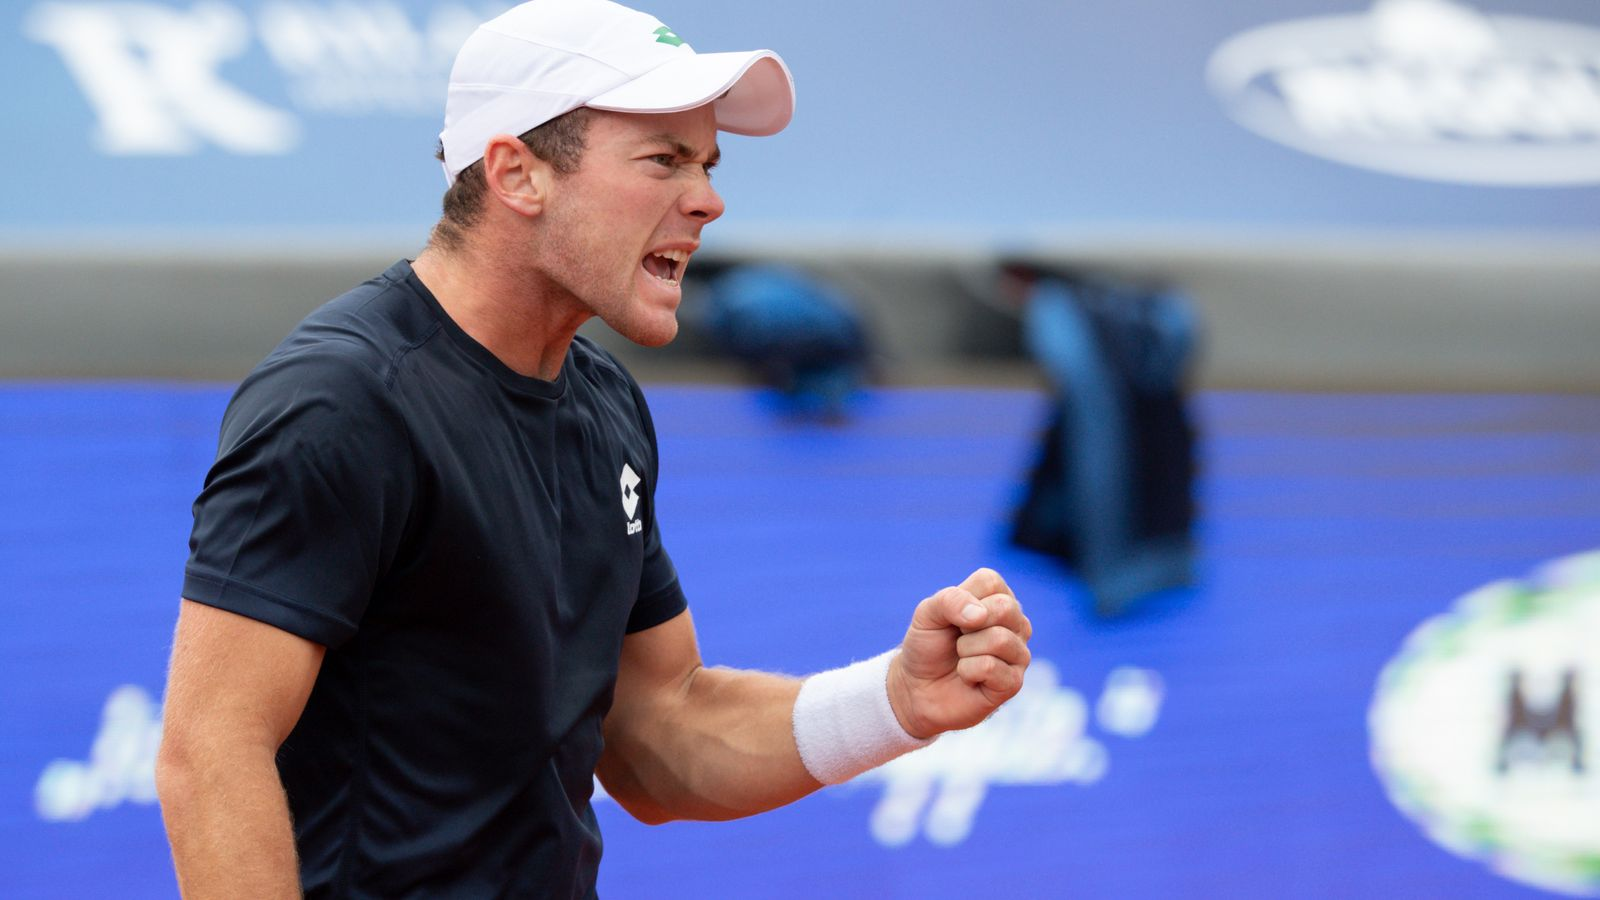 Tennis News: Dominic Kupfer wins the opening Masters match in Madrid |  Tennis News